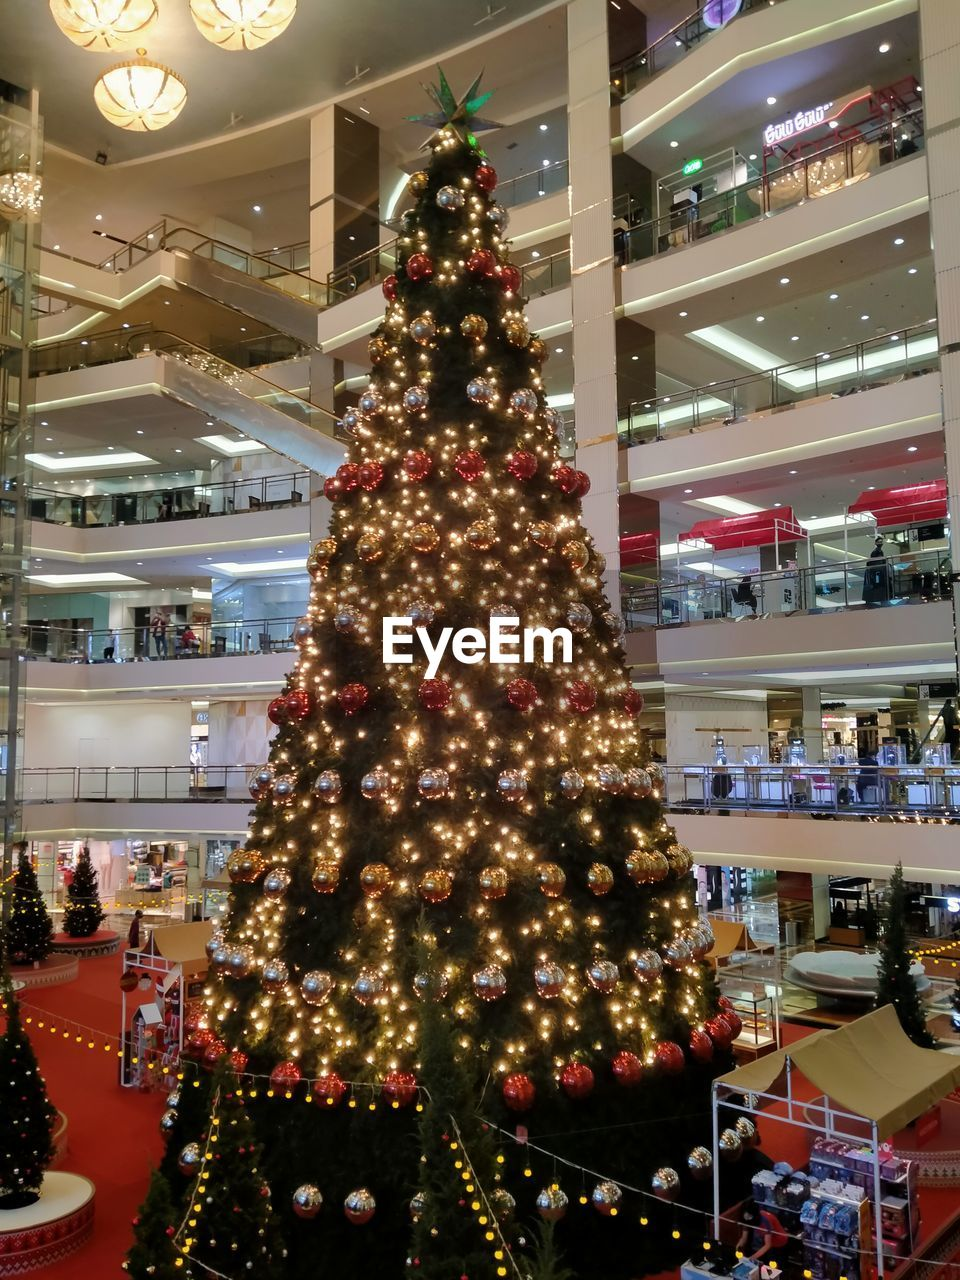 VIEW OF CHRISTMAS TREE IN SHOPPING MALL